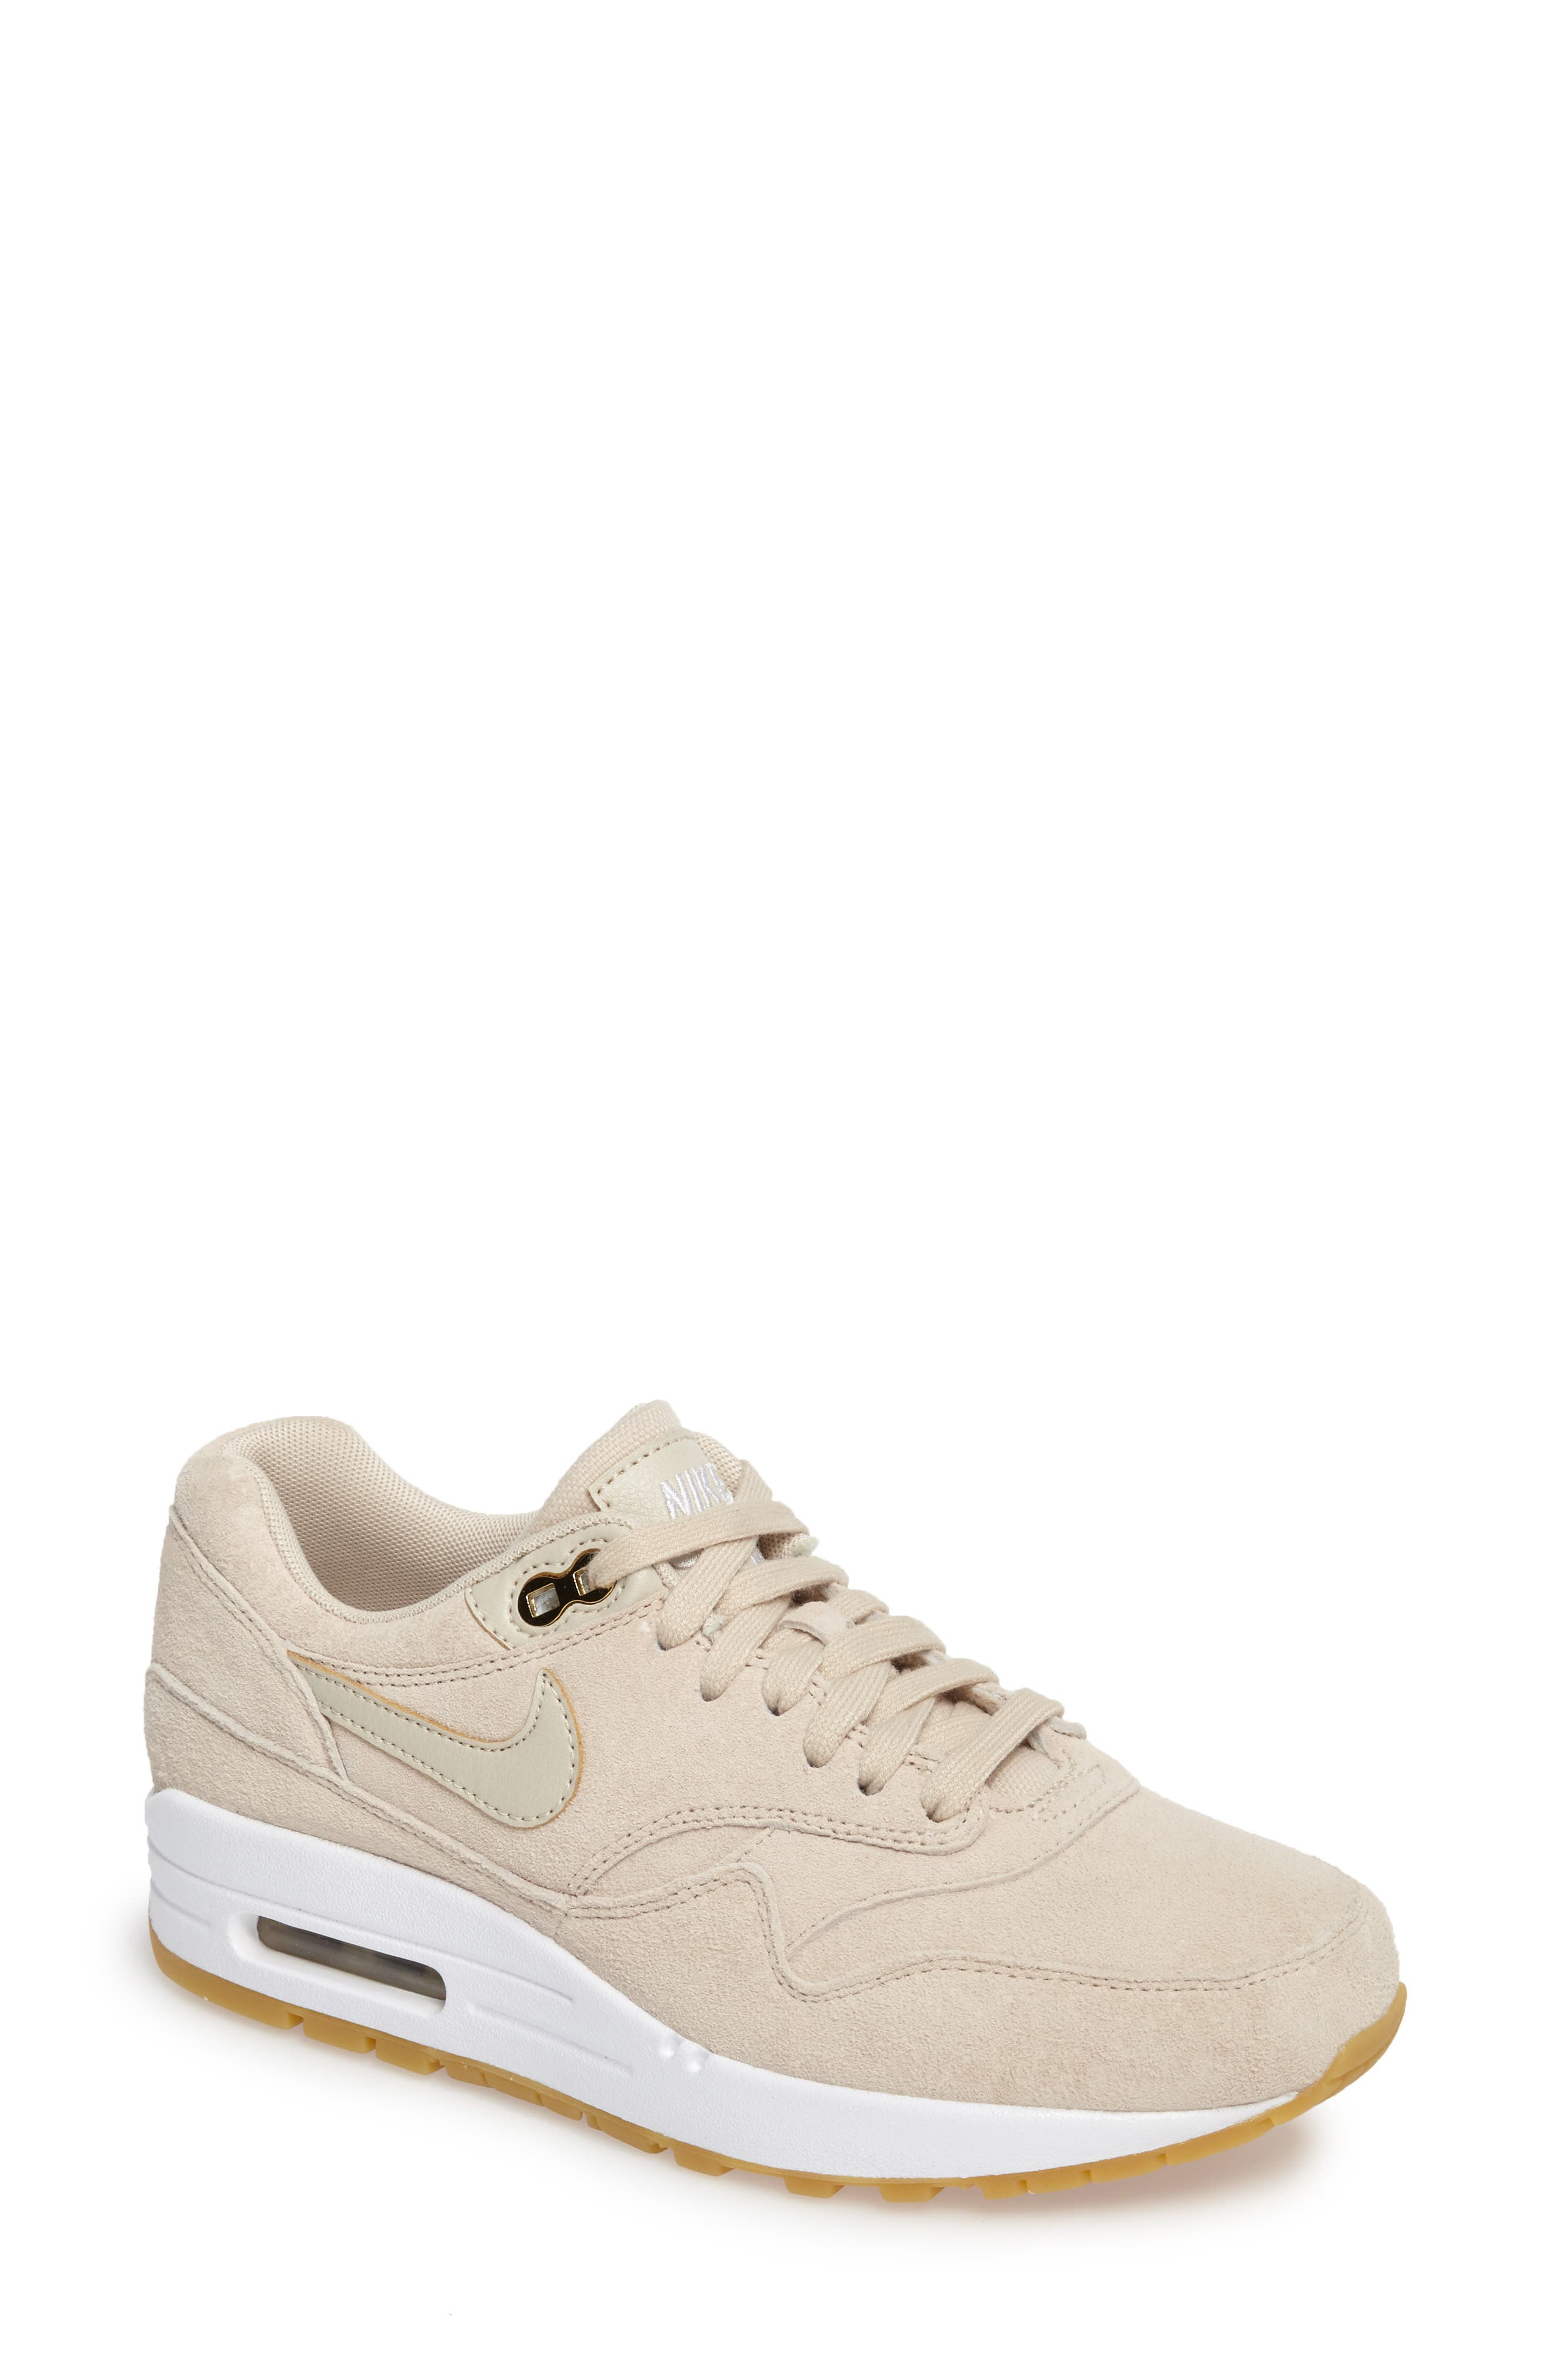 Nike Air Max 1 SD Sneaker (Women)